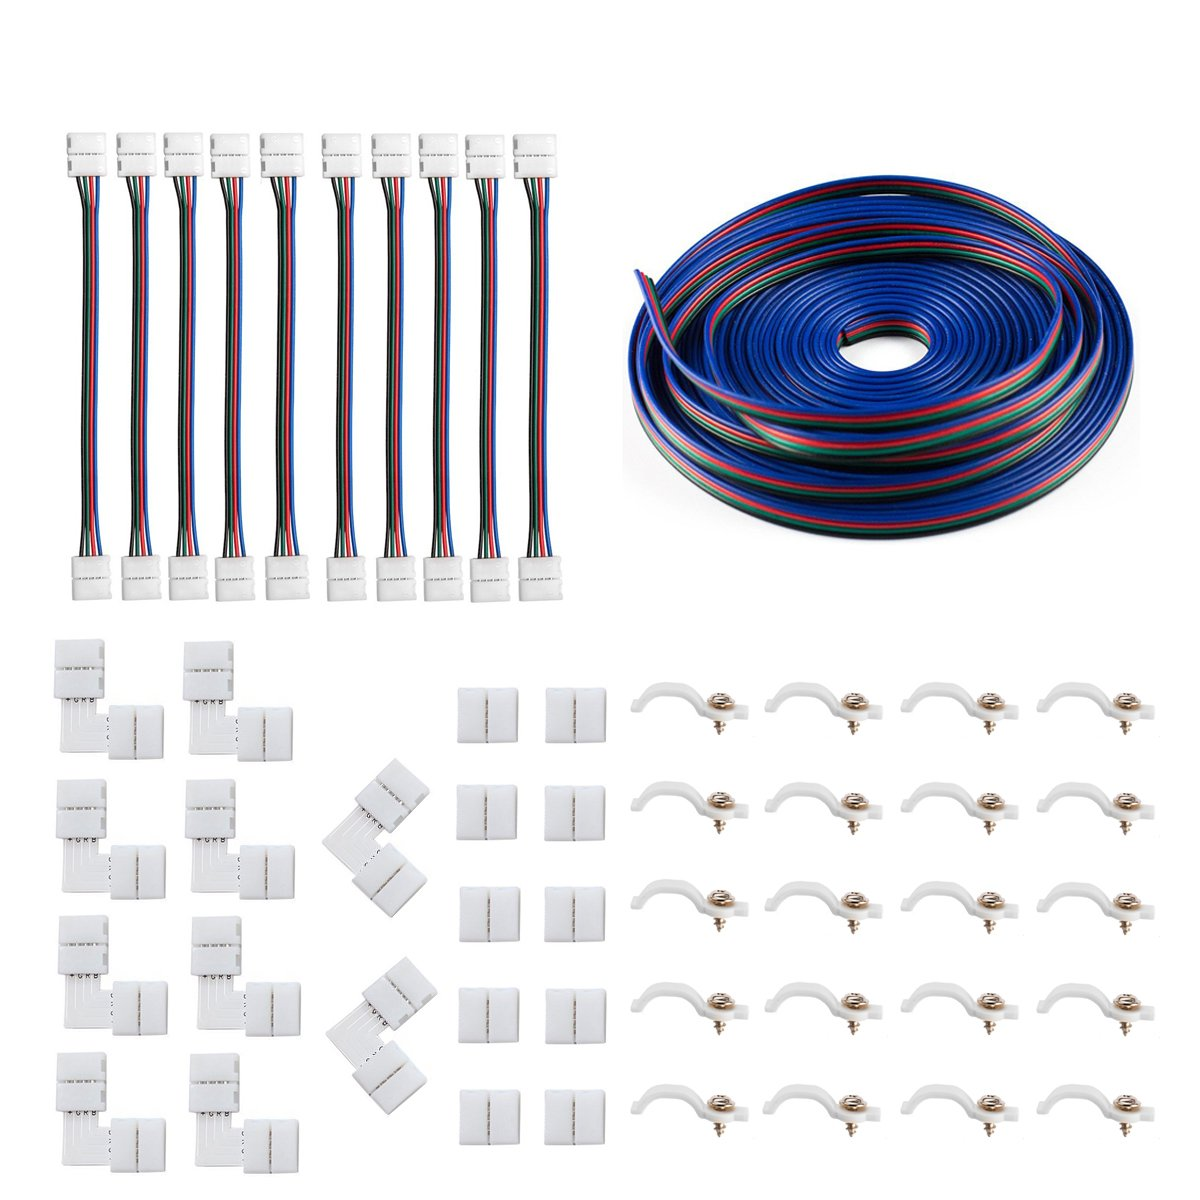 5050 4Pin LED Strip Connector Kit - 10mm RGB LED Connector Kit includes 32.8FT RGB Extension Cable, 10x LED Strip Jumper, 10x L Shape Connectors, 10x Gapless Connectors, 20x LED Strip Clips by iCreating (Image #1)